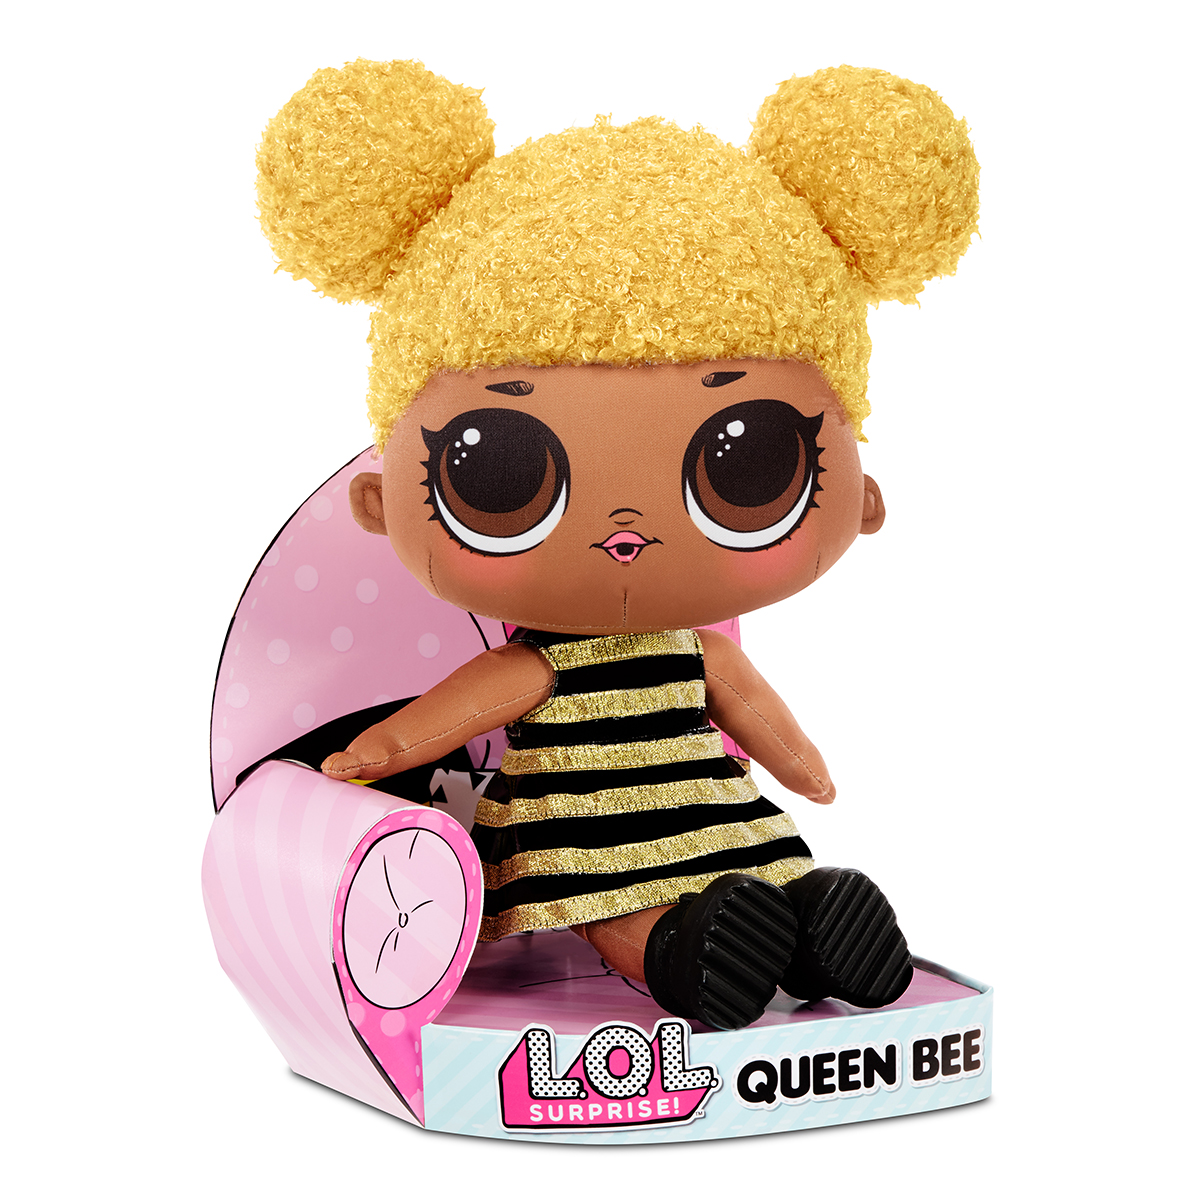 LOL Surprise Plush, Papusa Queen Bee din plus moale, 571292E7C